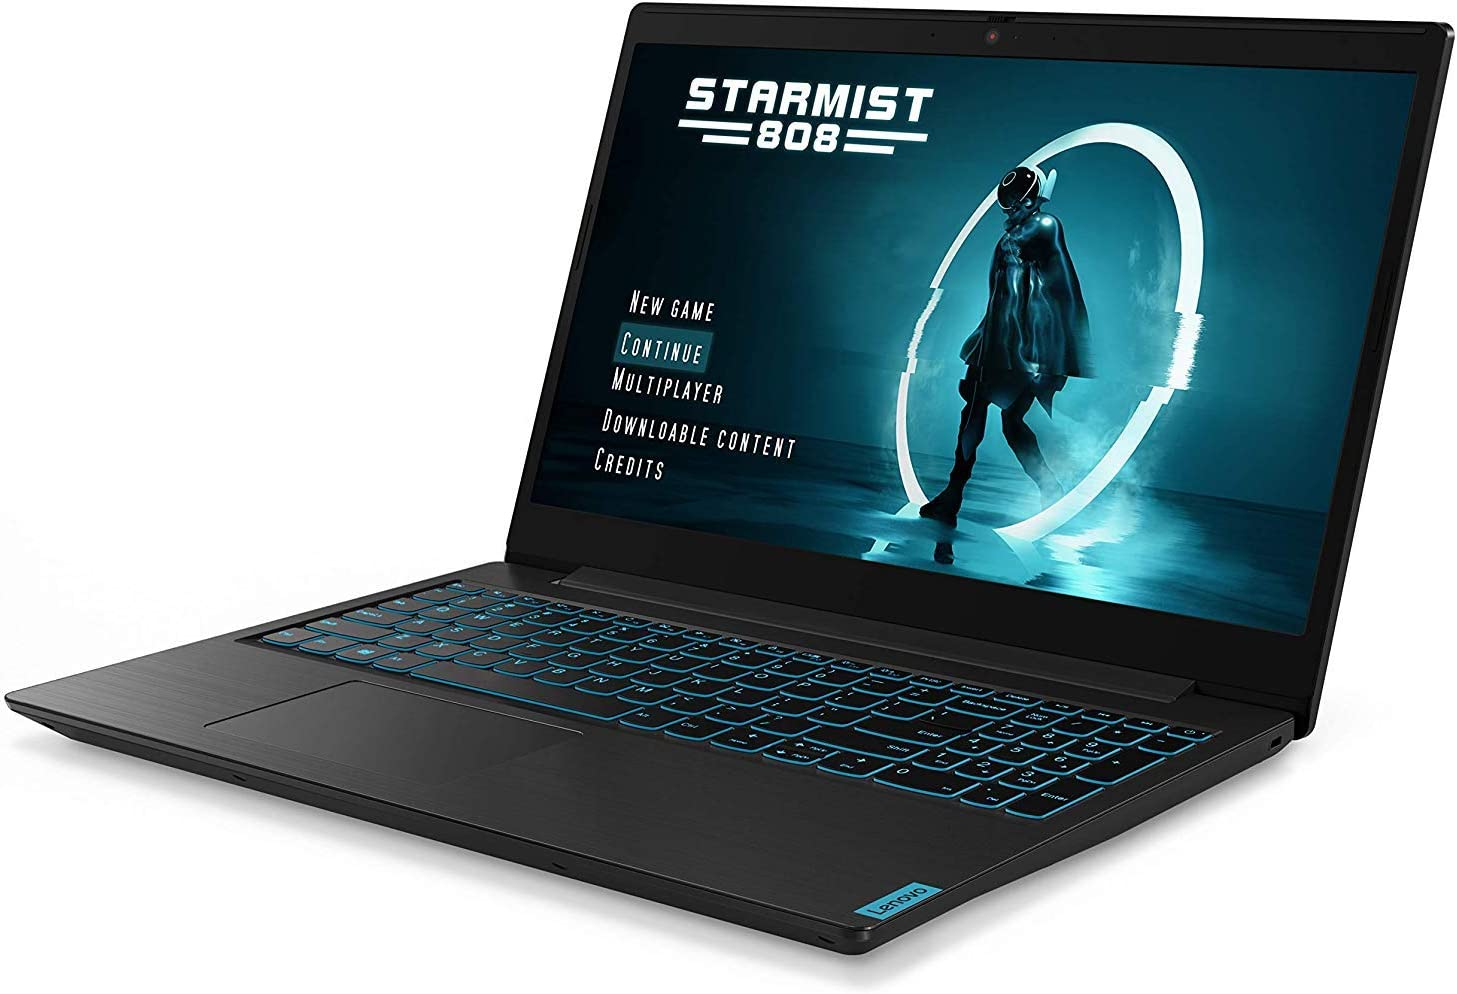 best laptop for programming for students, lenovo ideapad l340 gaming,lenovo ideapad l340 review,lenovo ideapad l340 gaming laptop,lenovo ideapad l340 specs,lenovo ideapad l340 price in pakistan,lenovo ideapad l340 15 gaming,lenovo ideapad l340 gaming price in pakistan,lenovo ideapad l340 drivers,lenovo ideapad l340 15,lenovo ideapad l340 amazon,lenovo ideapad l340 amd,lenovo ideapad l340 amd ryzen 5,lenovo ideapad l340 amd ryzen 3,lenovo ideapad l340 australia,lenovo ideapad l340 amd ryzen 5 review,lenovo ideapad l340 amd ryzen 7,lenovo ideapad l340 accessories,the lenovo ideapad l340,is the lenovo ideapad l340 good for gaming,is the lenovo ideapad l340 touch screen,is the lenovo ideapad l340 good,lenovo ideapad l340 battery life,lenovo ideapad l340 bios,lenovo ideapad l340 battery,lenovo ideapad l340 best buy,lenovo ideapad l340 boot menu,lenovo ideapad l340 benchmark,lenovo ideapad l340 black screen,lenovo ideapad l340 best 17 inch laptop,lenovo ideapad l340-b,lenovo ideapad l340 ci5,lenovo ideapad l340 core i7, amazali.com